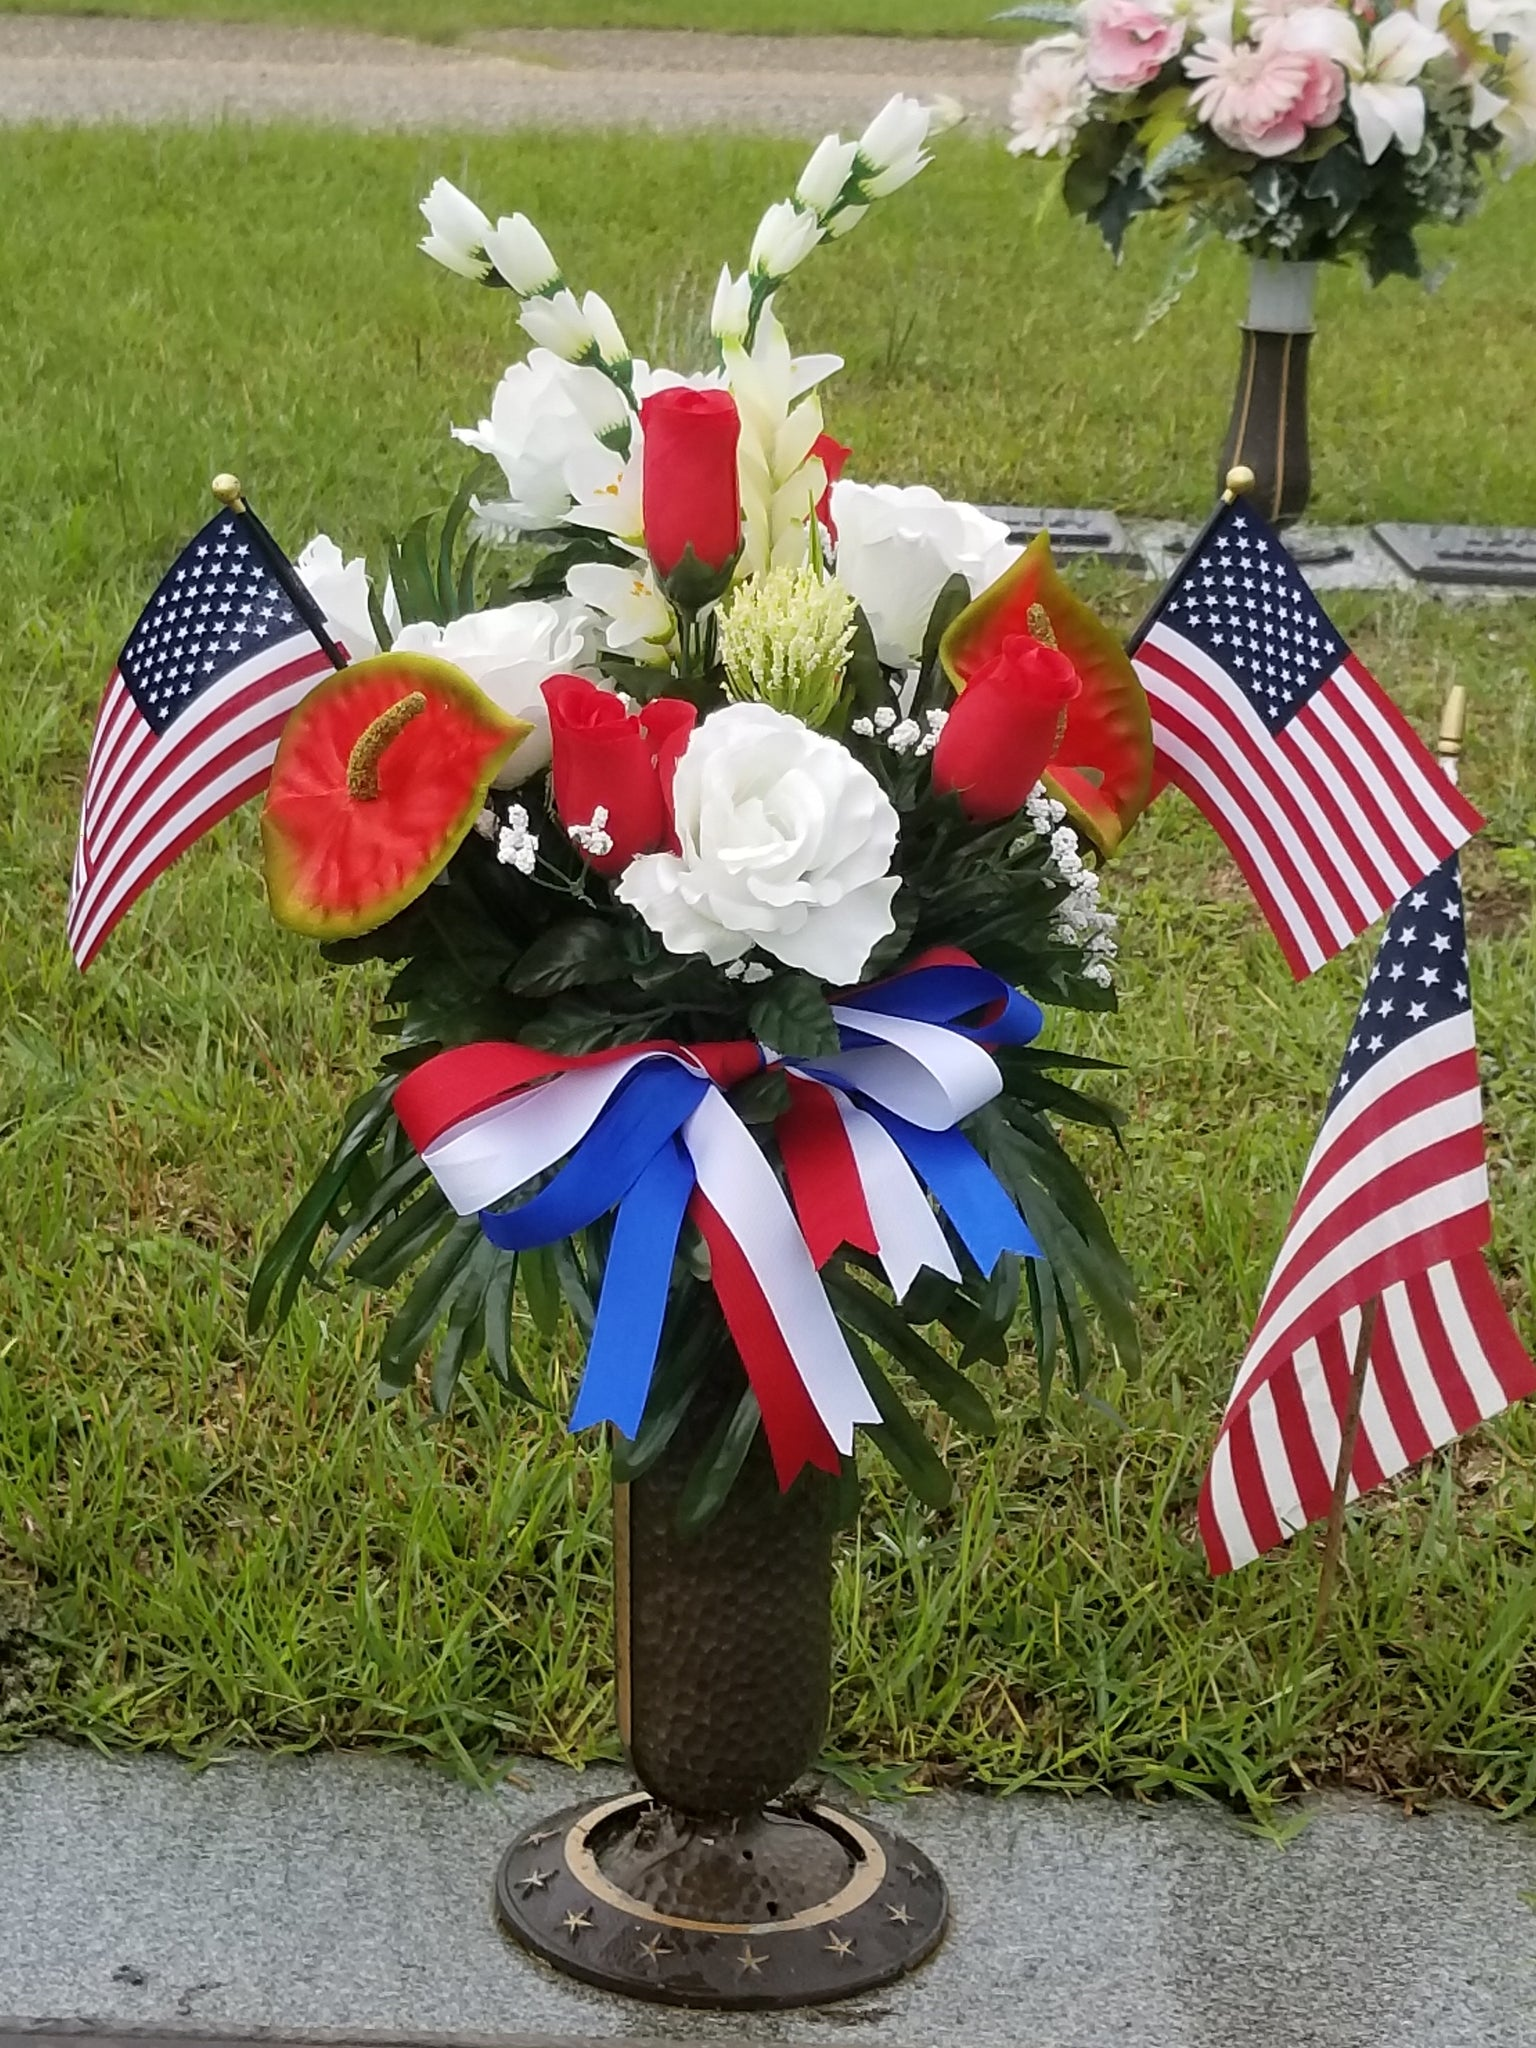 Red And White With Bow And Flags Arrangement Show Off Headstones